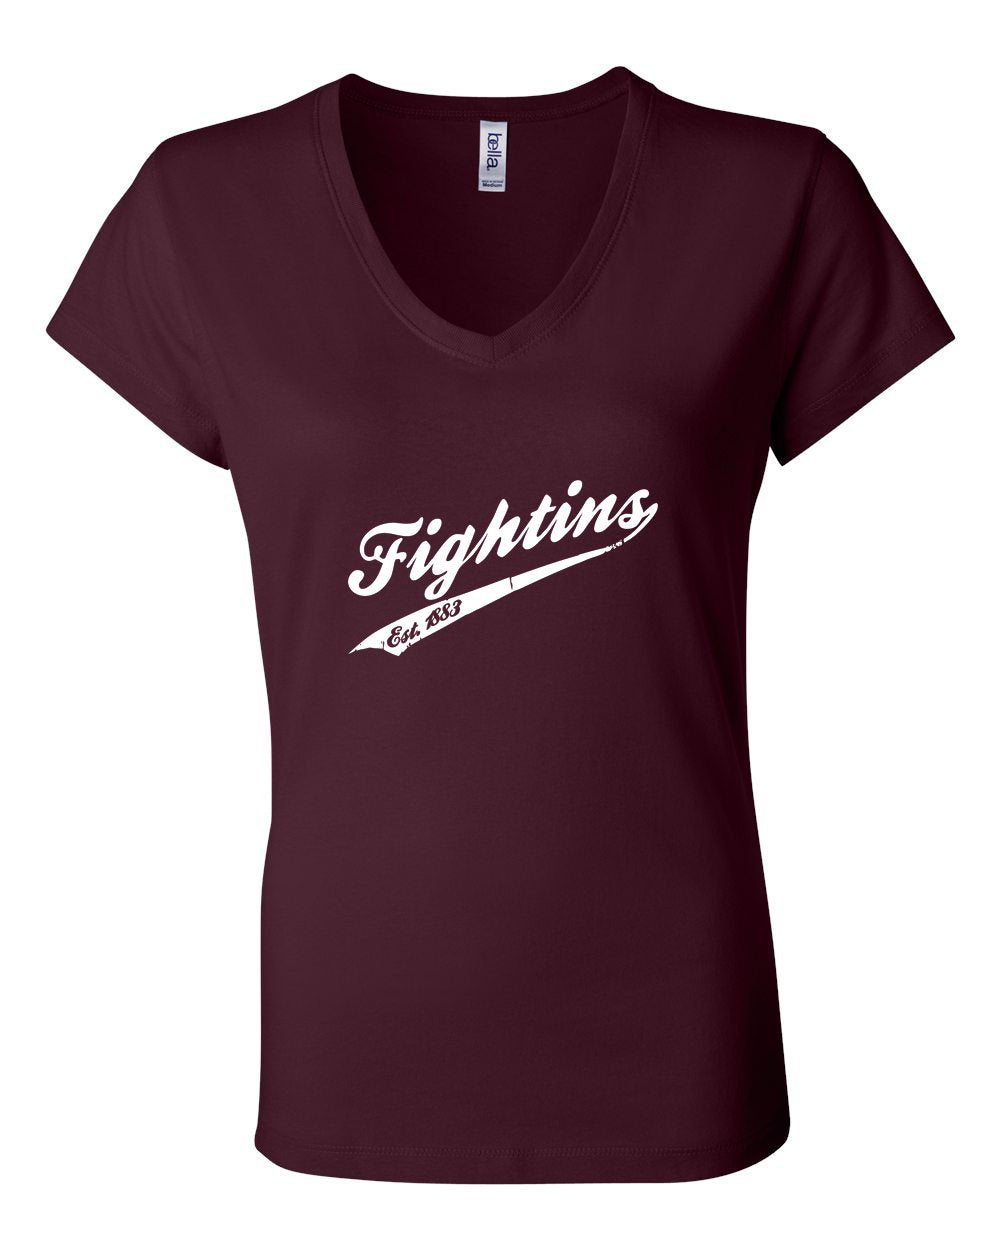 Fightins Vintage LADIES Junior Fit V-Neck